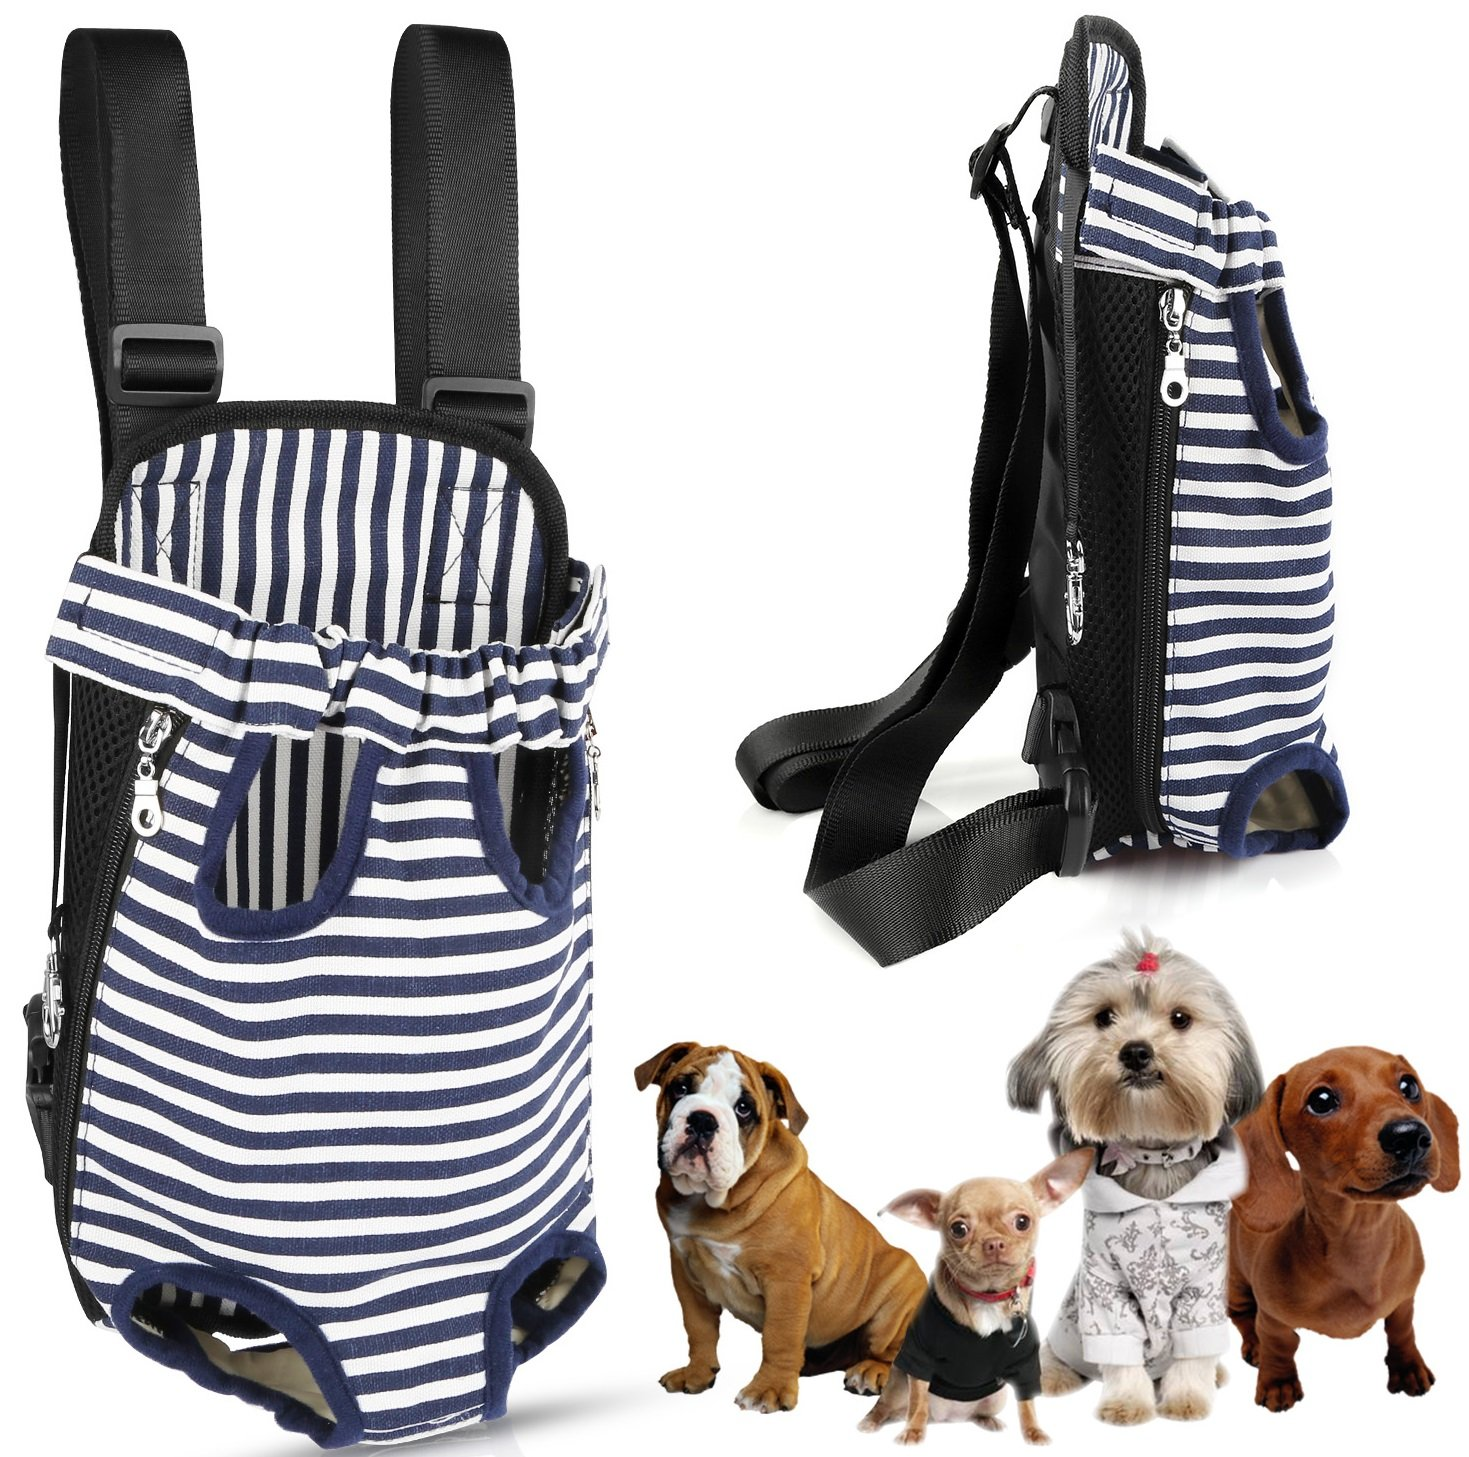 GPCT Pet Puppy Sling Carrier Hands Free Shoulder Travel Backpack. Adjustable Dog Cat Pet Puppy Outdoor Carry Bag Tote Handbag Carrier, Legs Out, Easy Fit For Travelling Hiking Camping- Strip L